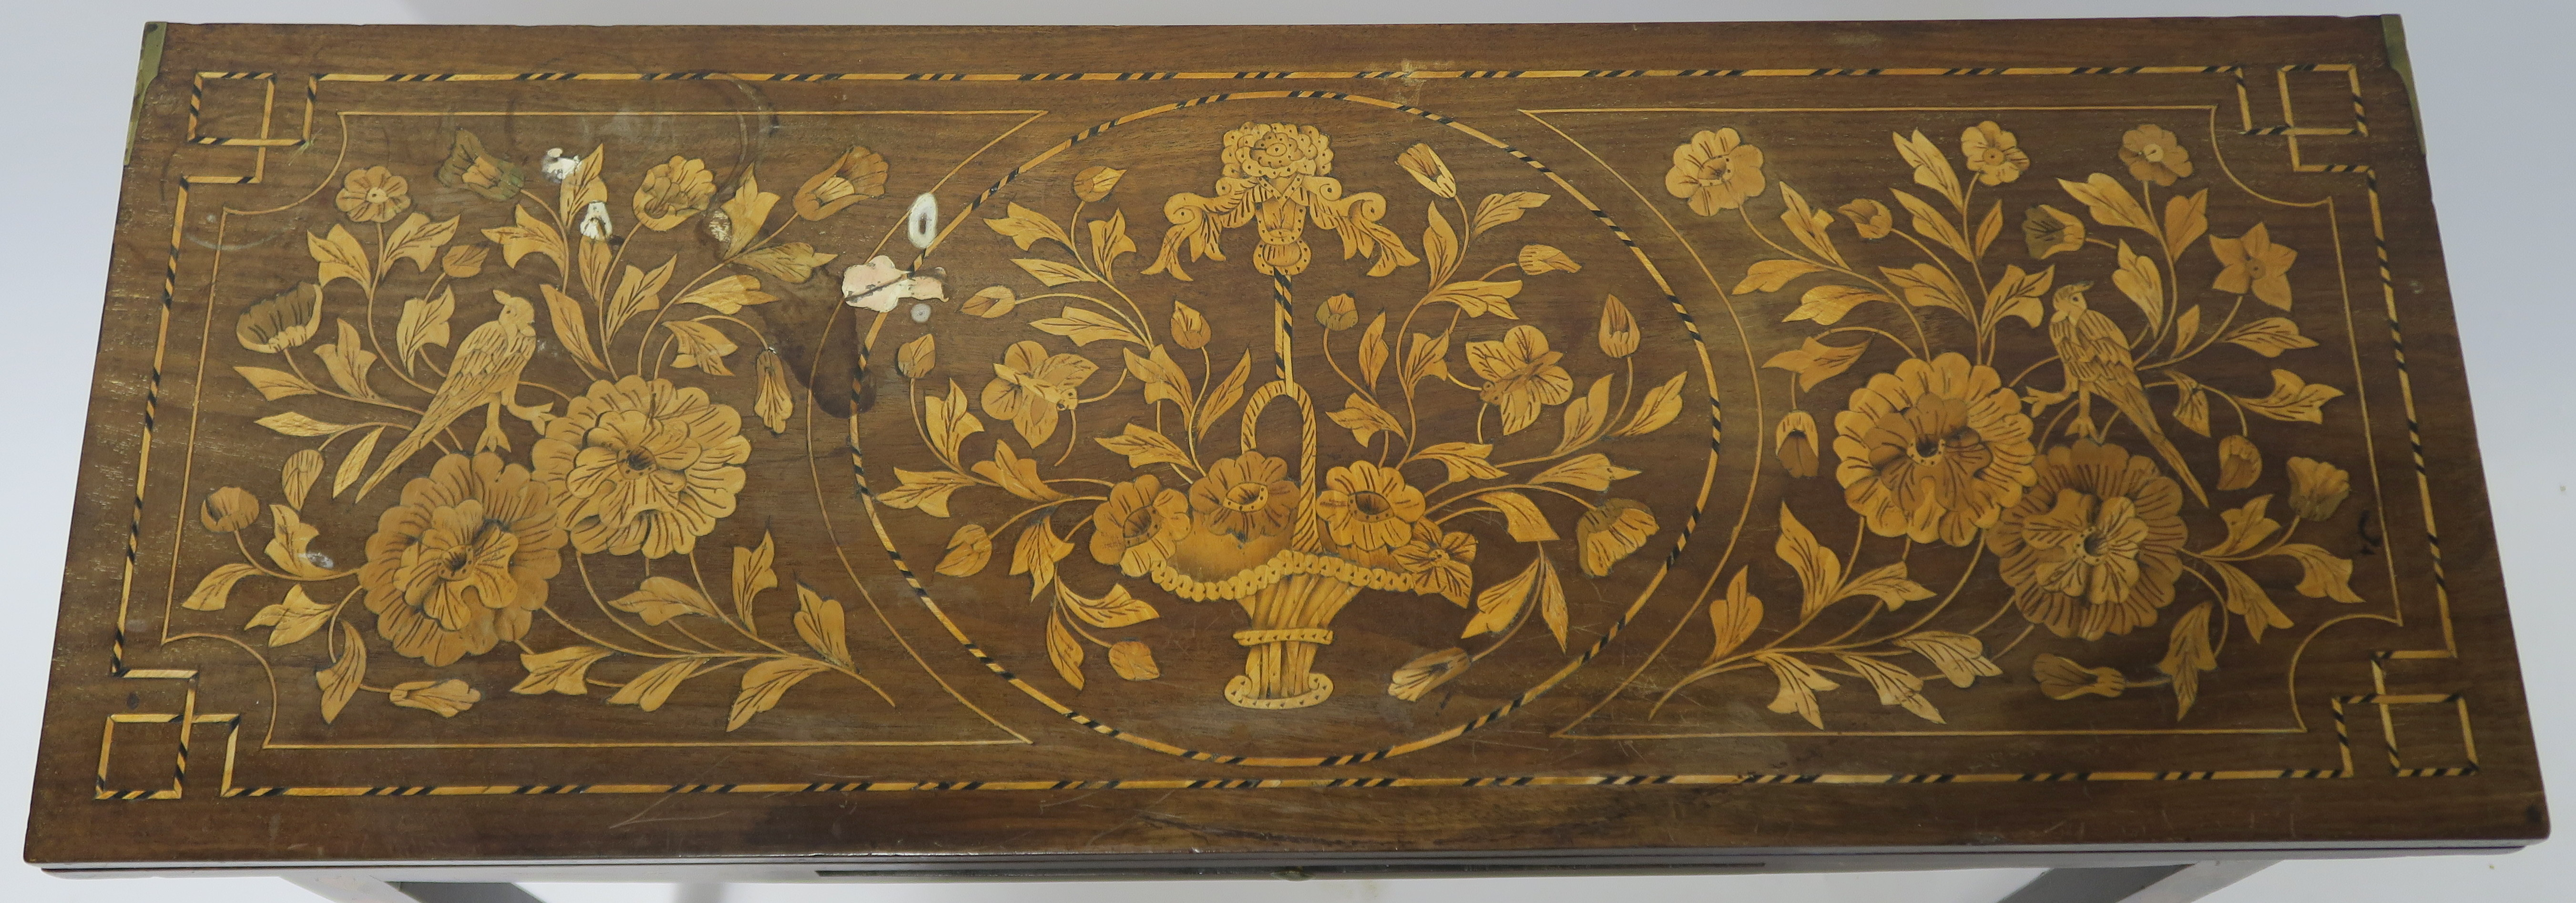 A DUTCH MARQUETRY WALNUT GAMES TABLE decorated with a basket of flowers, birds and scrolling - Image 2 of 11